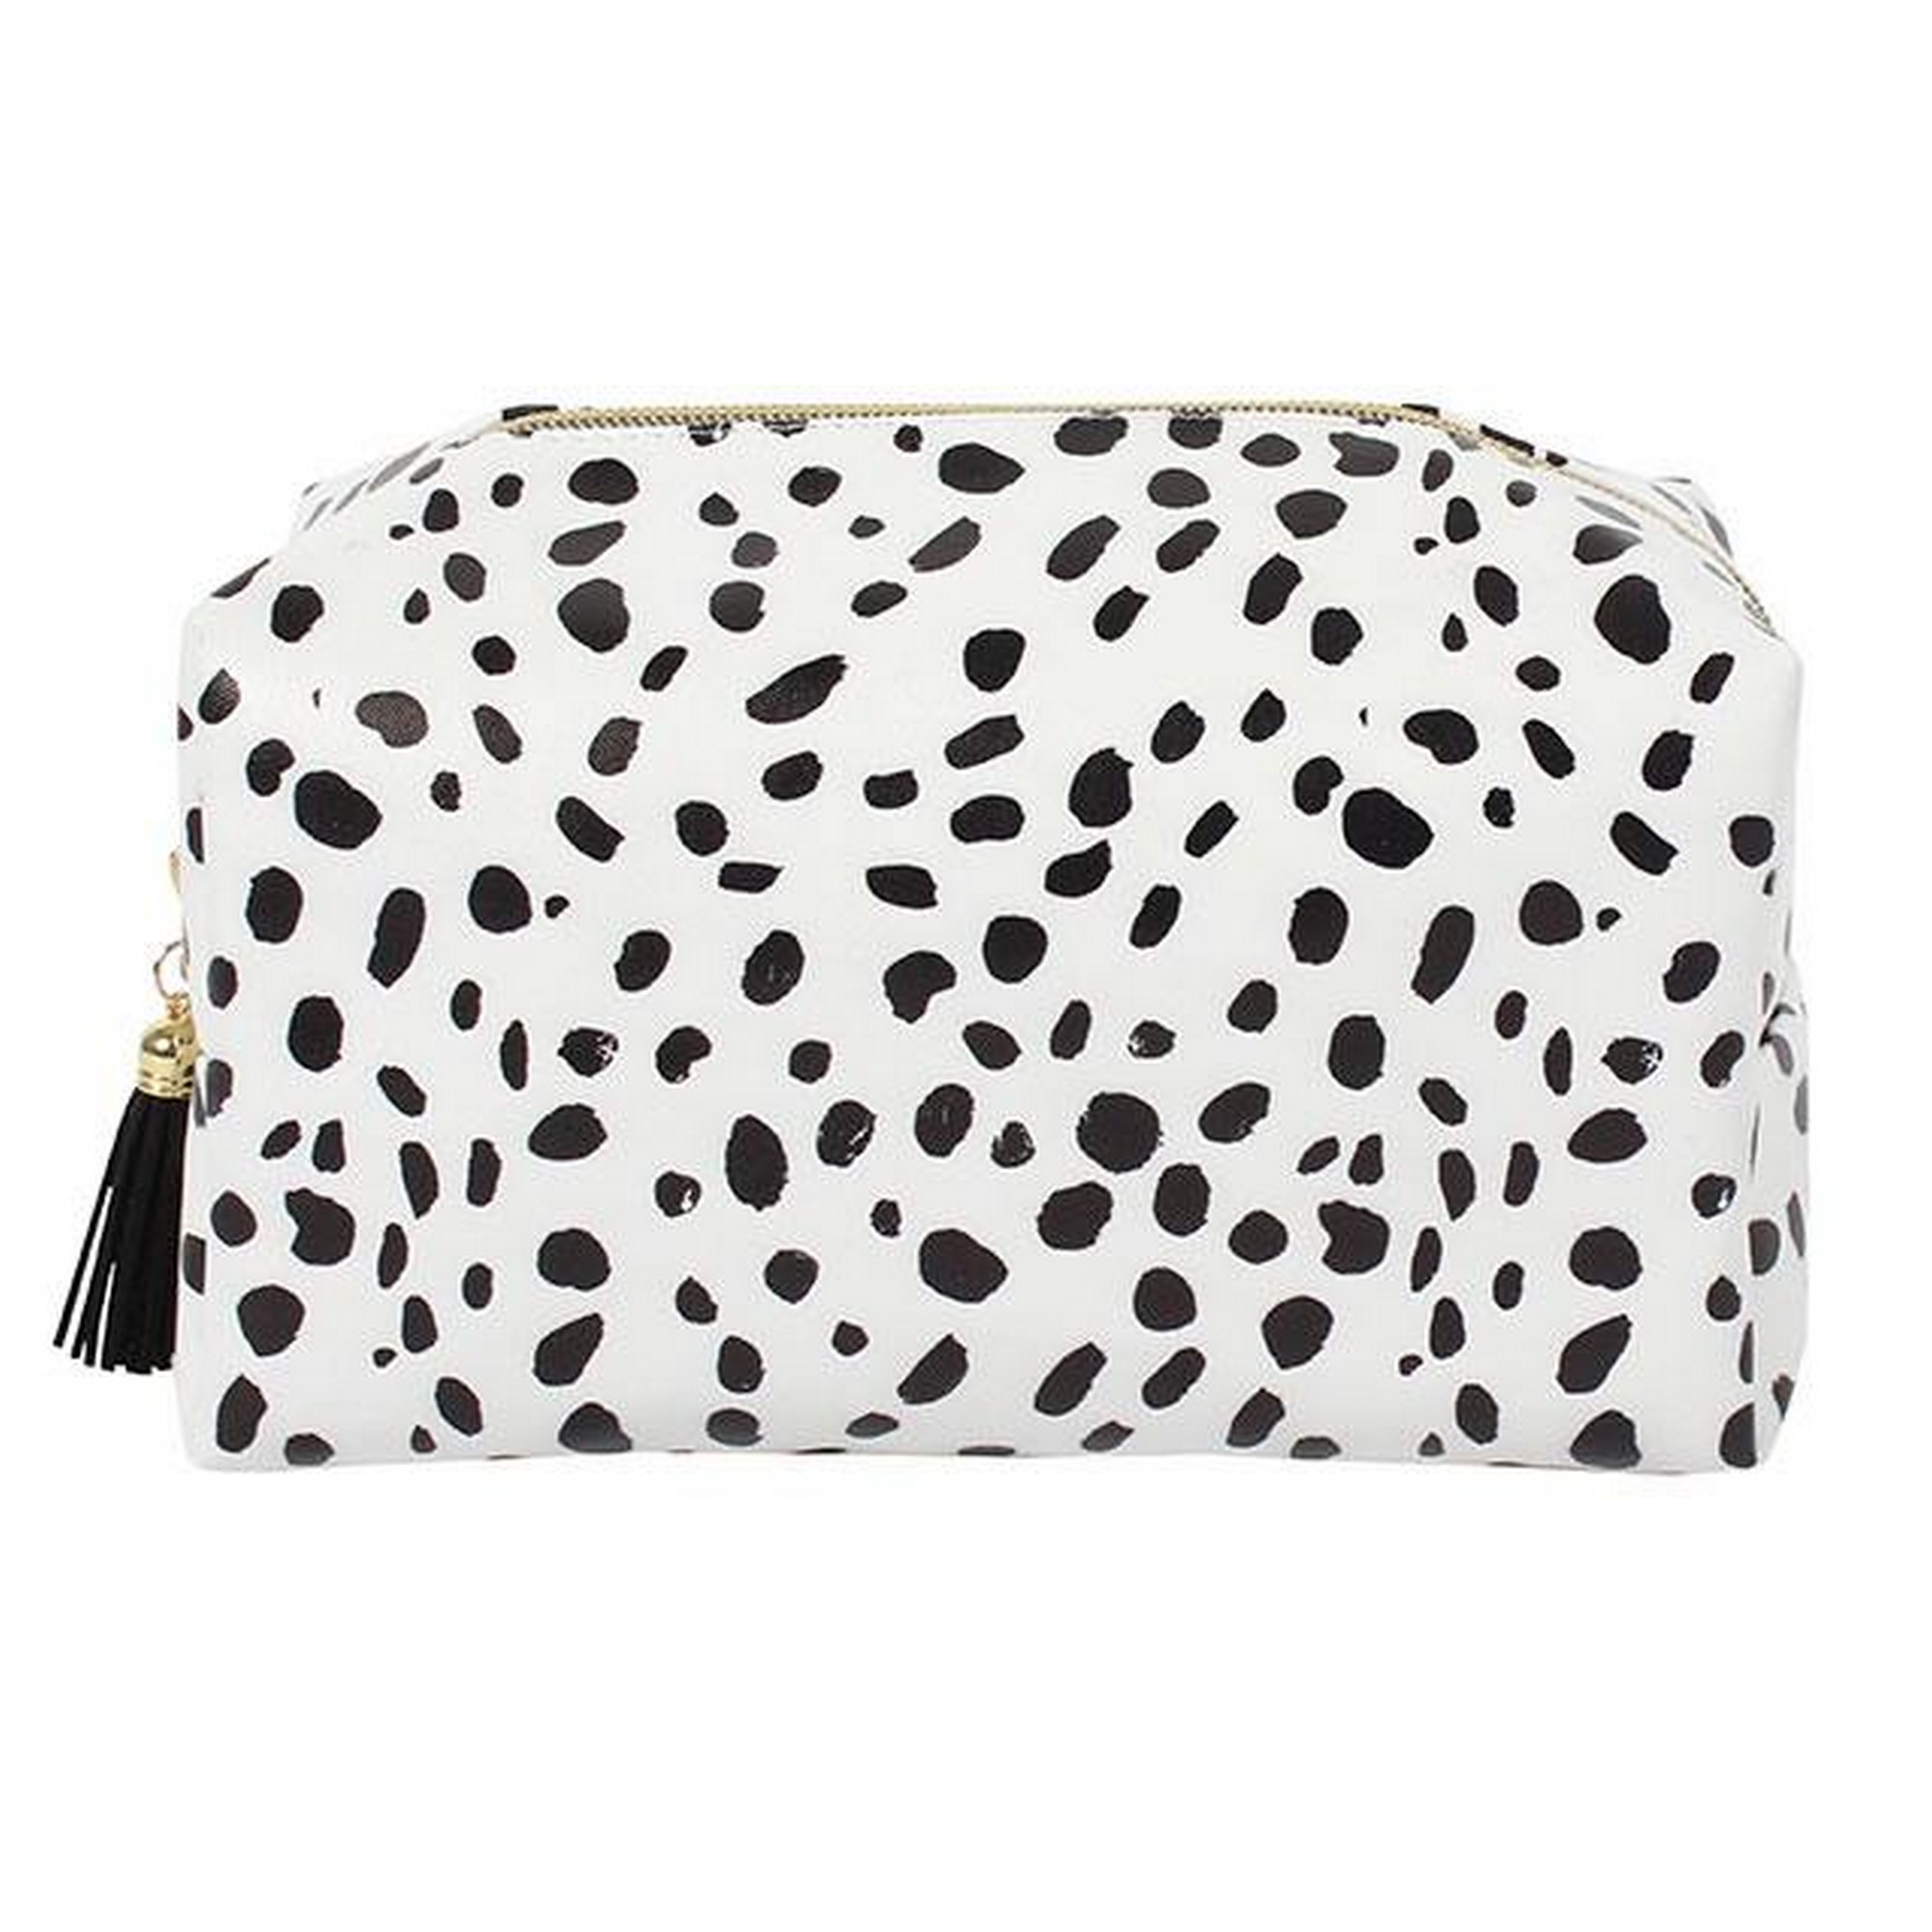 Something Different Dalmatian Print Make Up Bag (One Size) (Black/White)